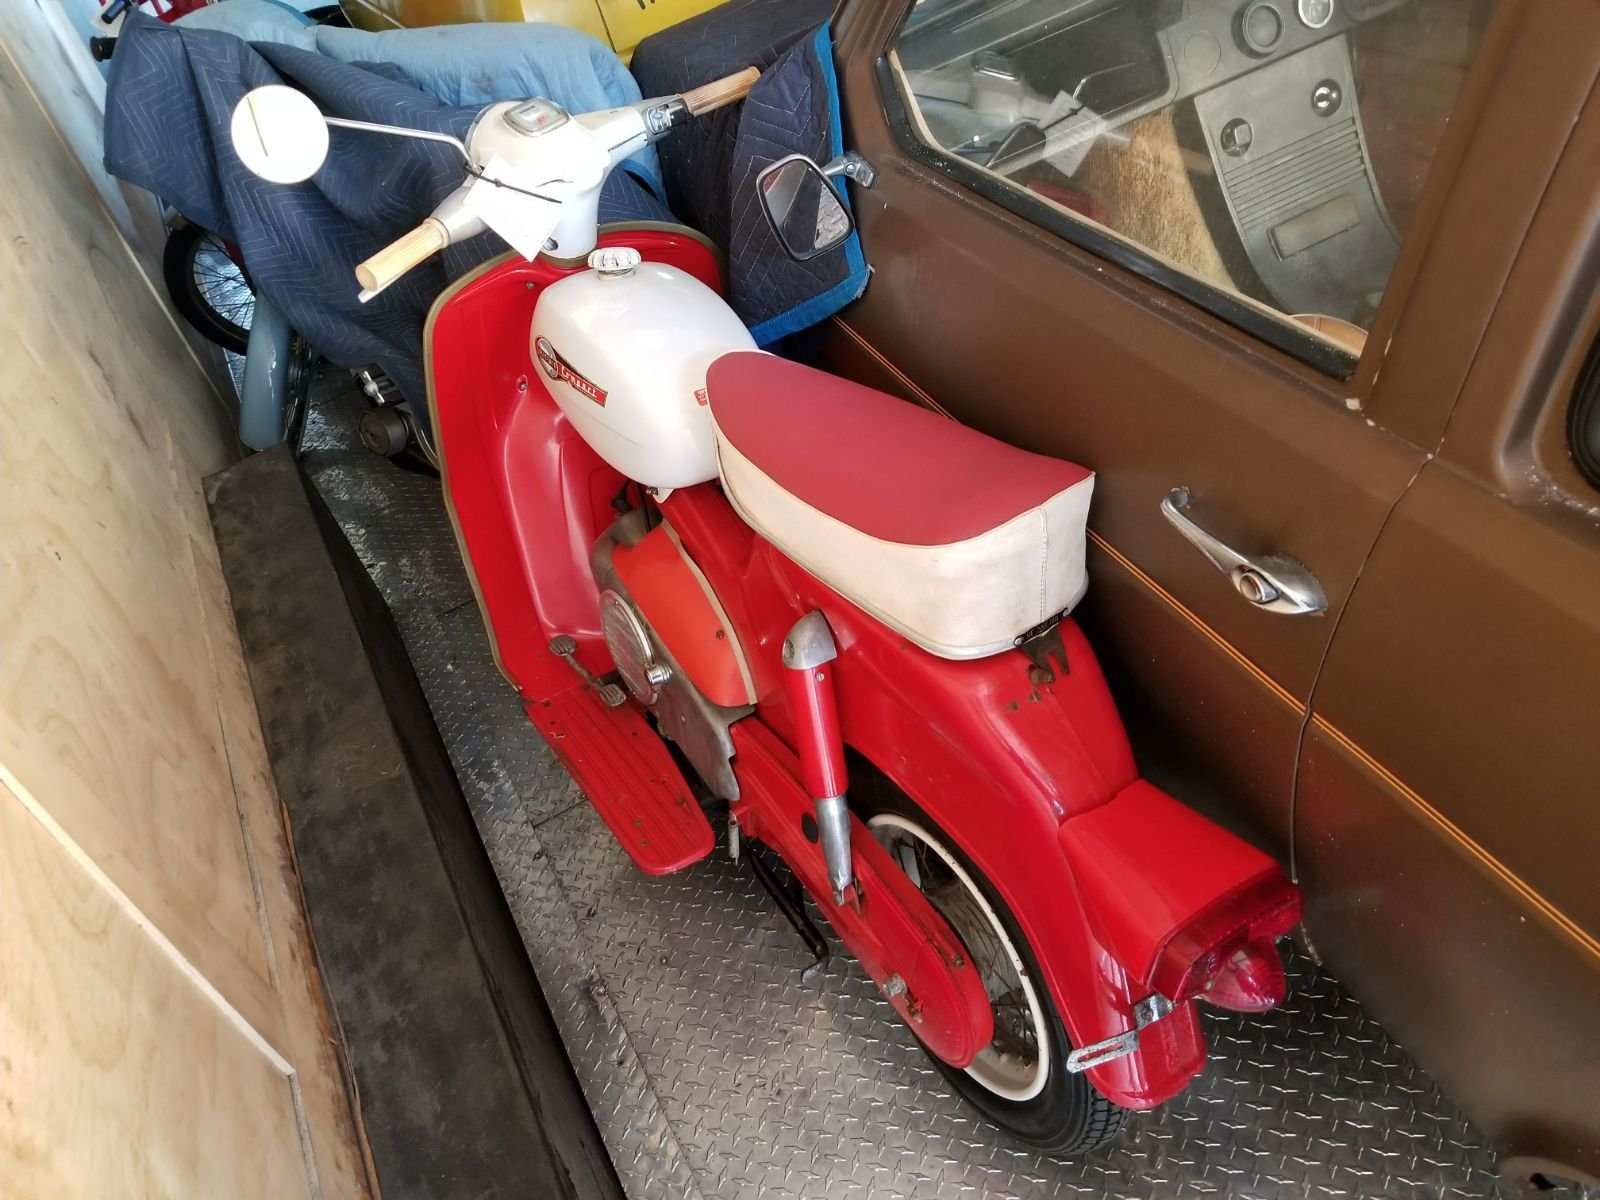 1966 allstate vespa scooter